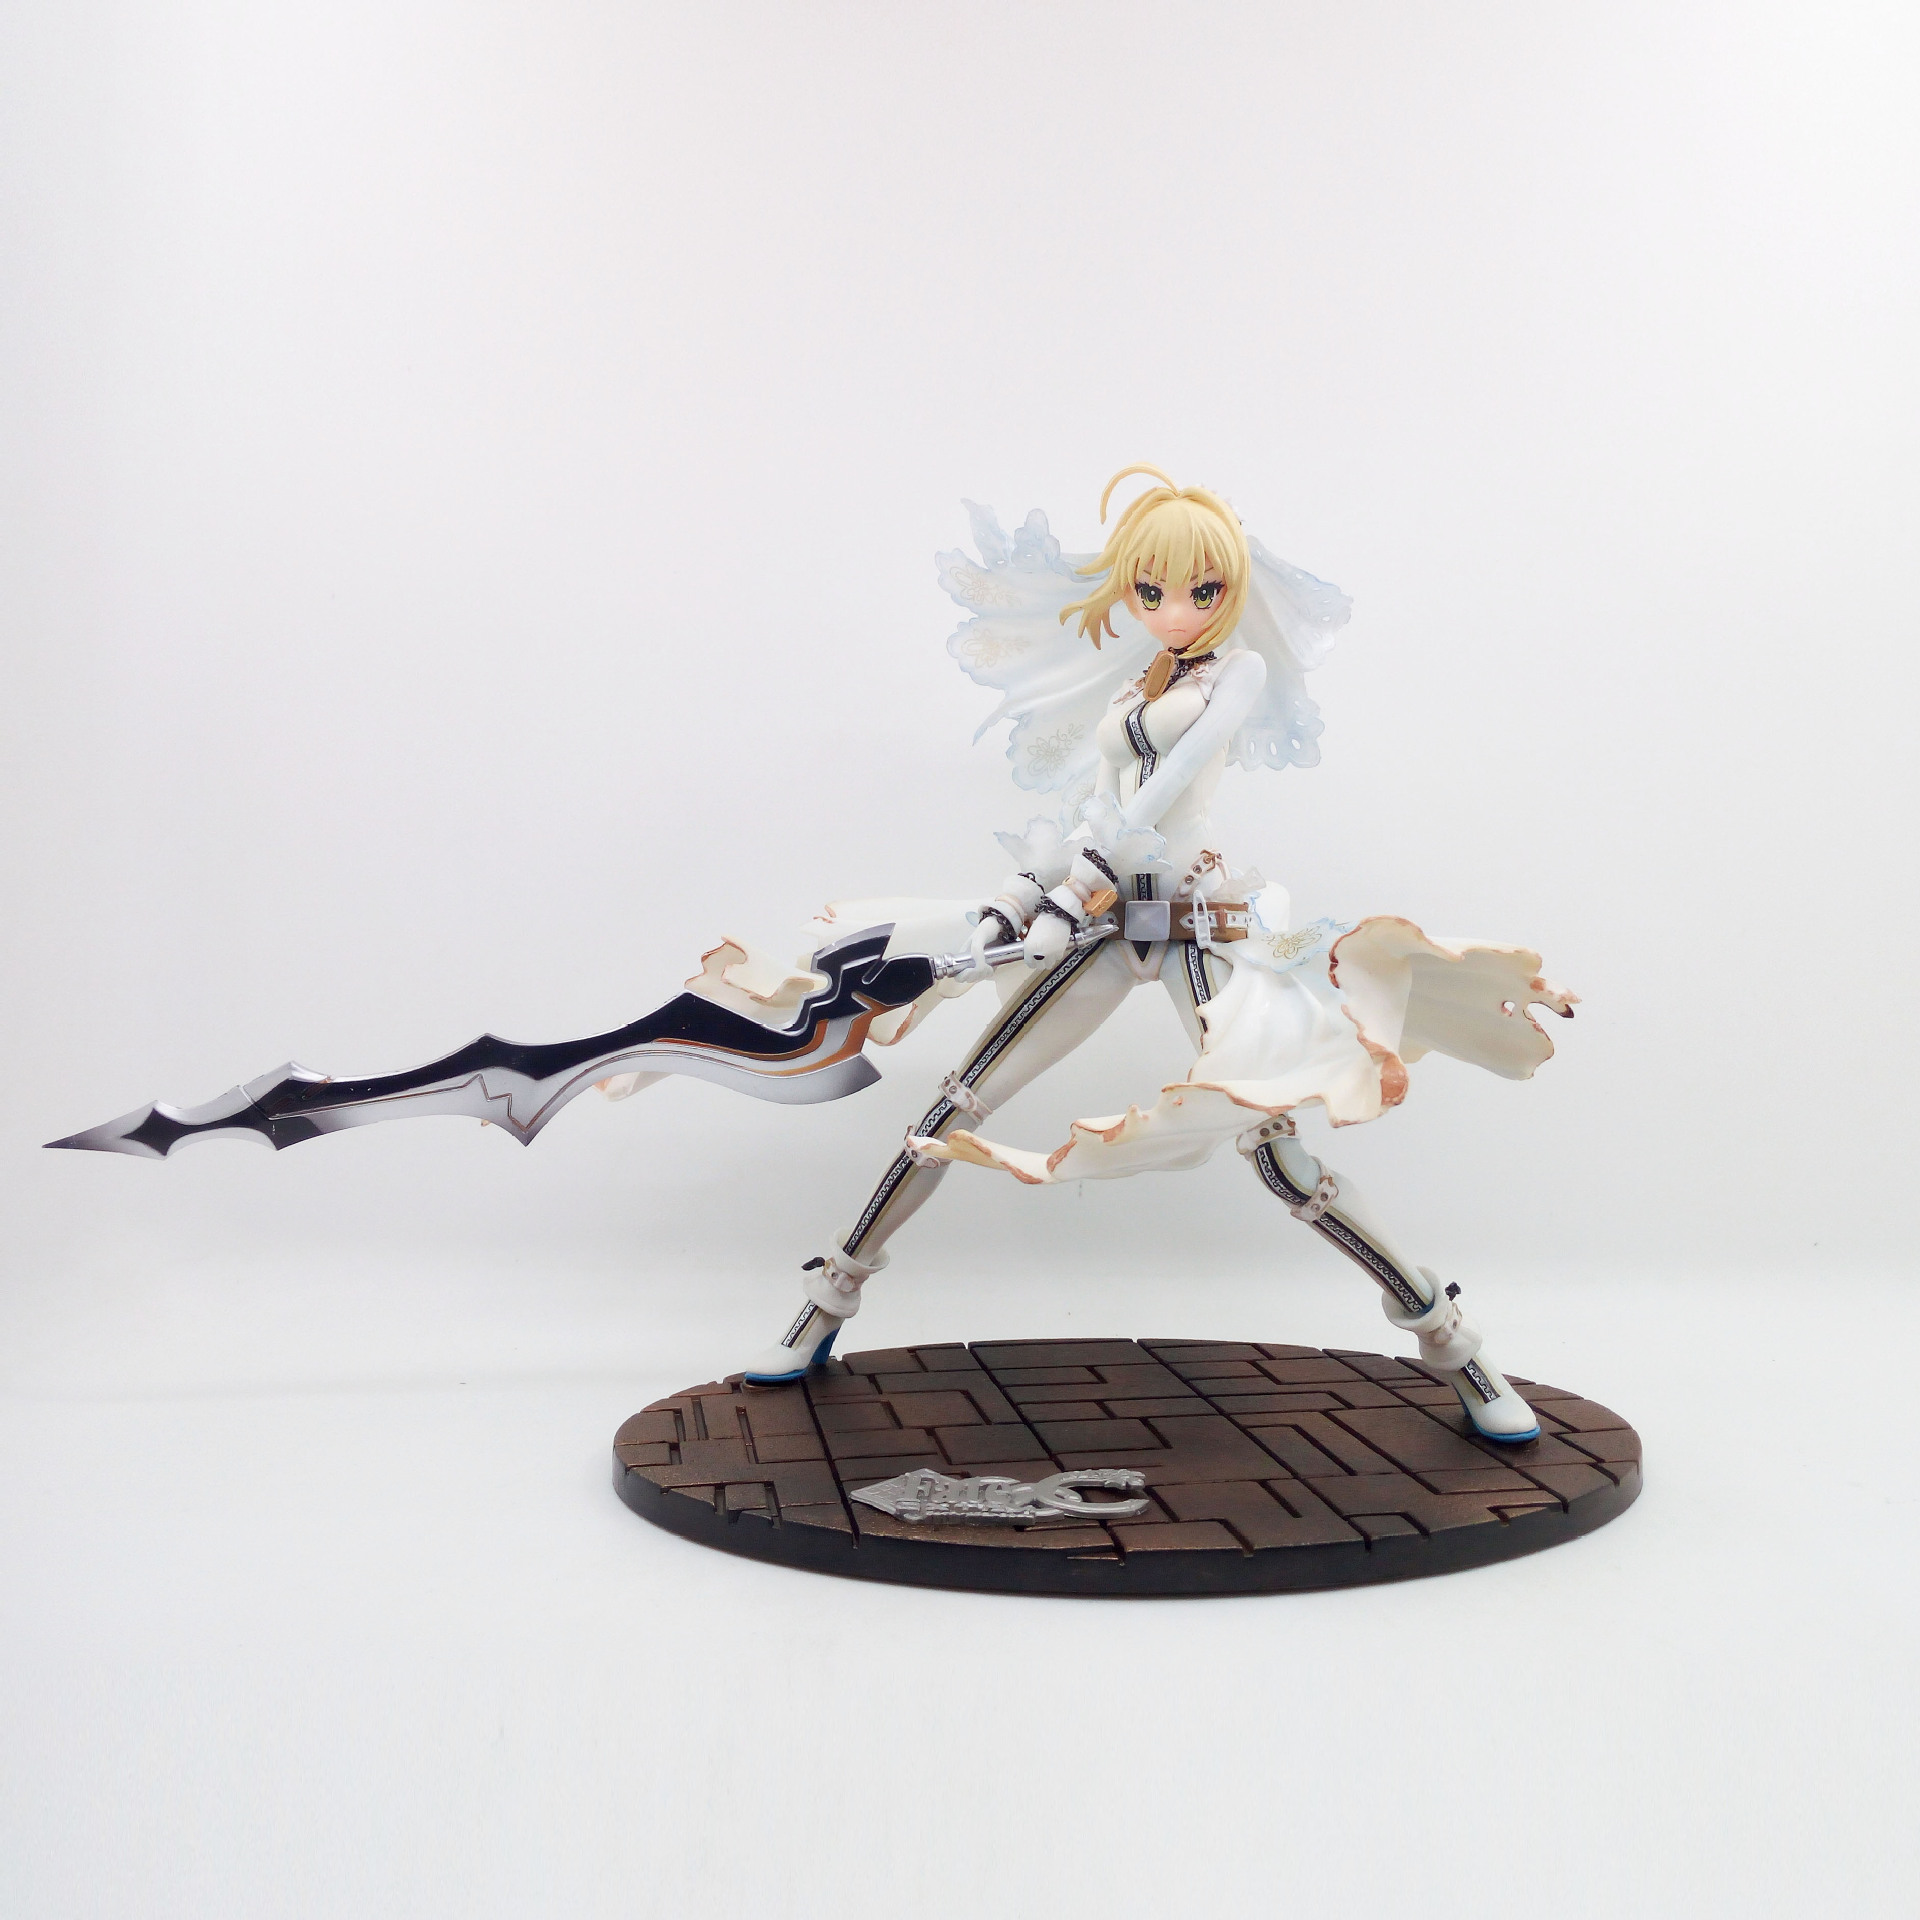 XINDUPLAN Fate stay night Saber bride Wedding dress White Clothe Anime Action Figure Toys 22cm PVC Kids Gift Collect Model 1043 huong anime fate stay night fate 24cm saber lili battle ver pvc action figure collectible toy model briquedos christmas gift